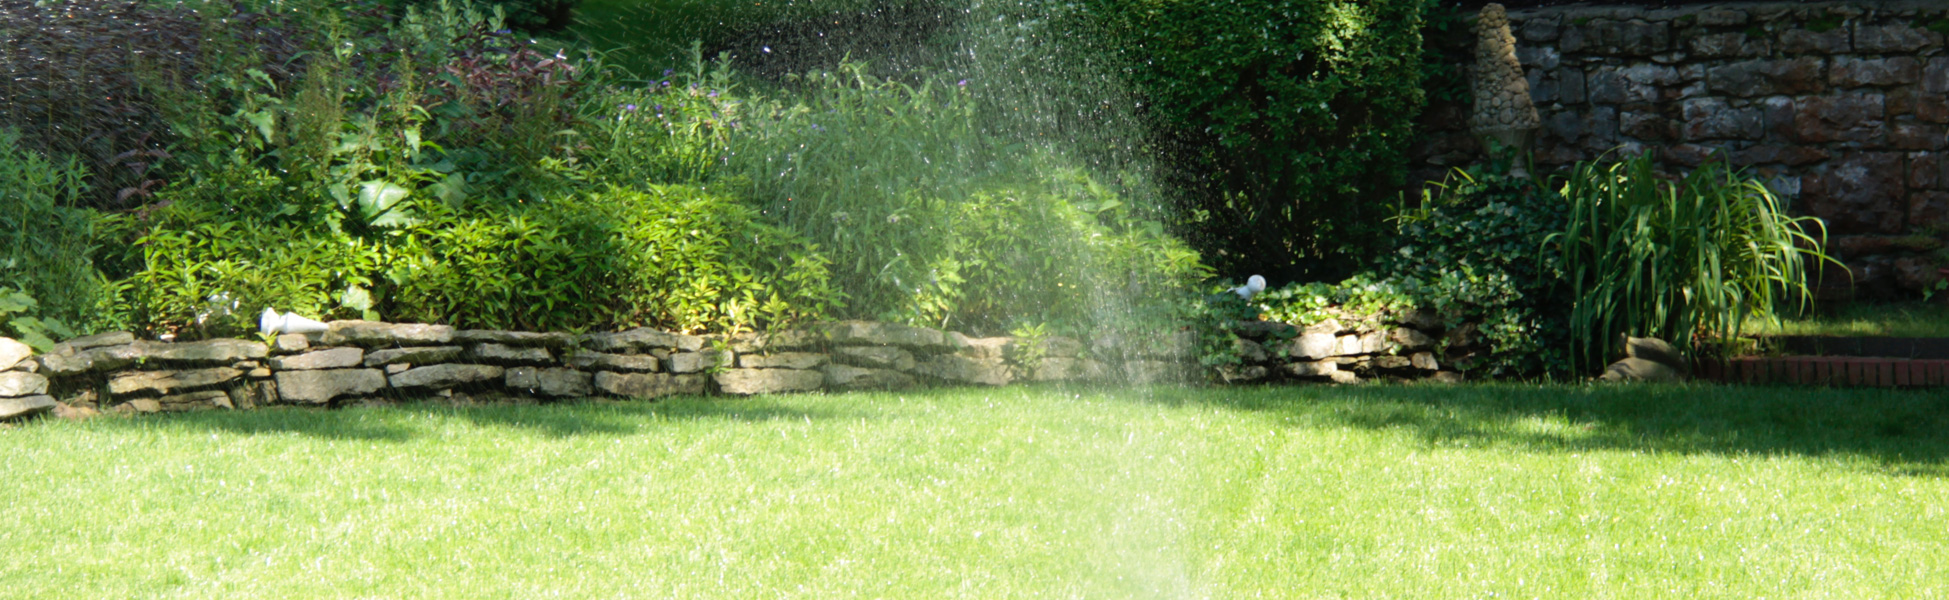 The Grass is Always Greener – With an Automatic Sprinkler!